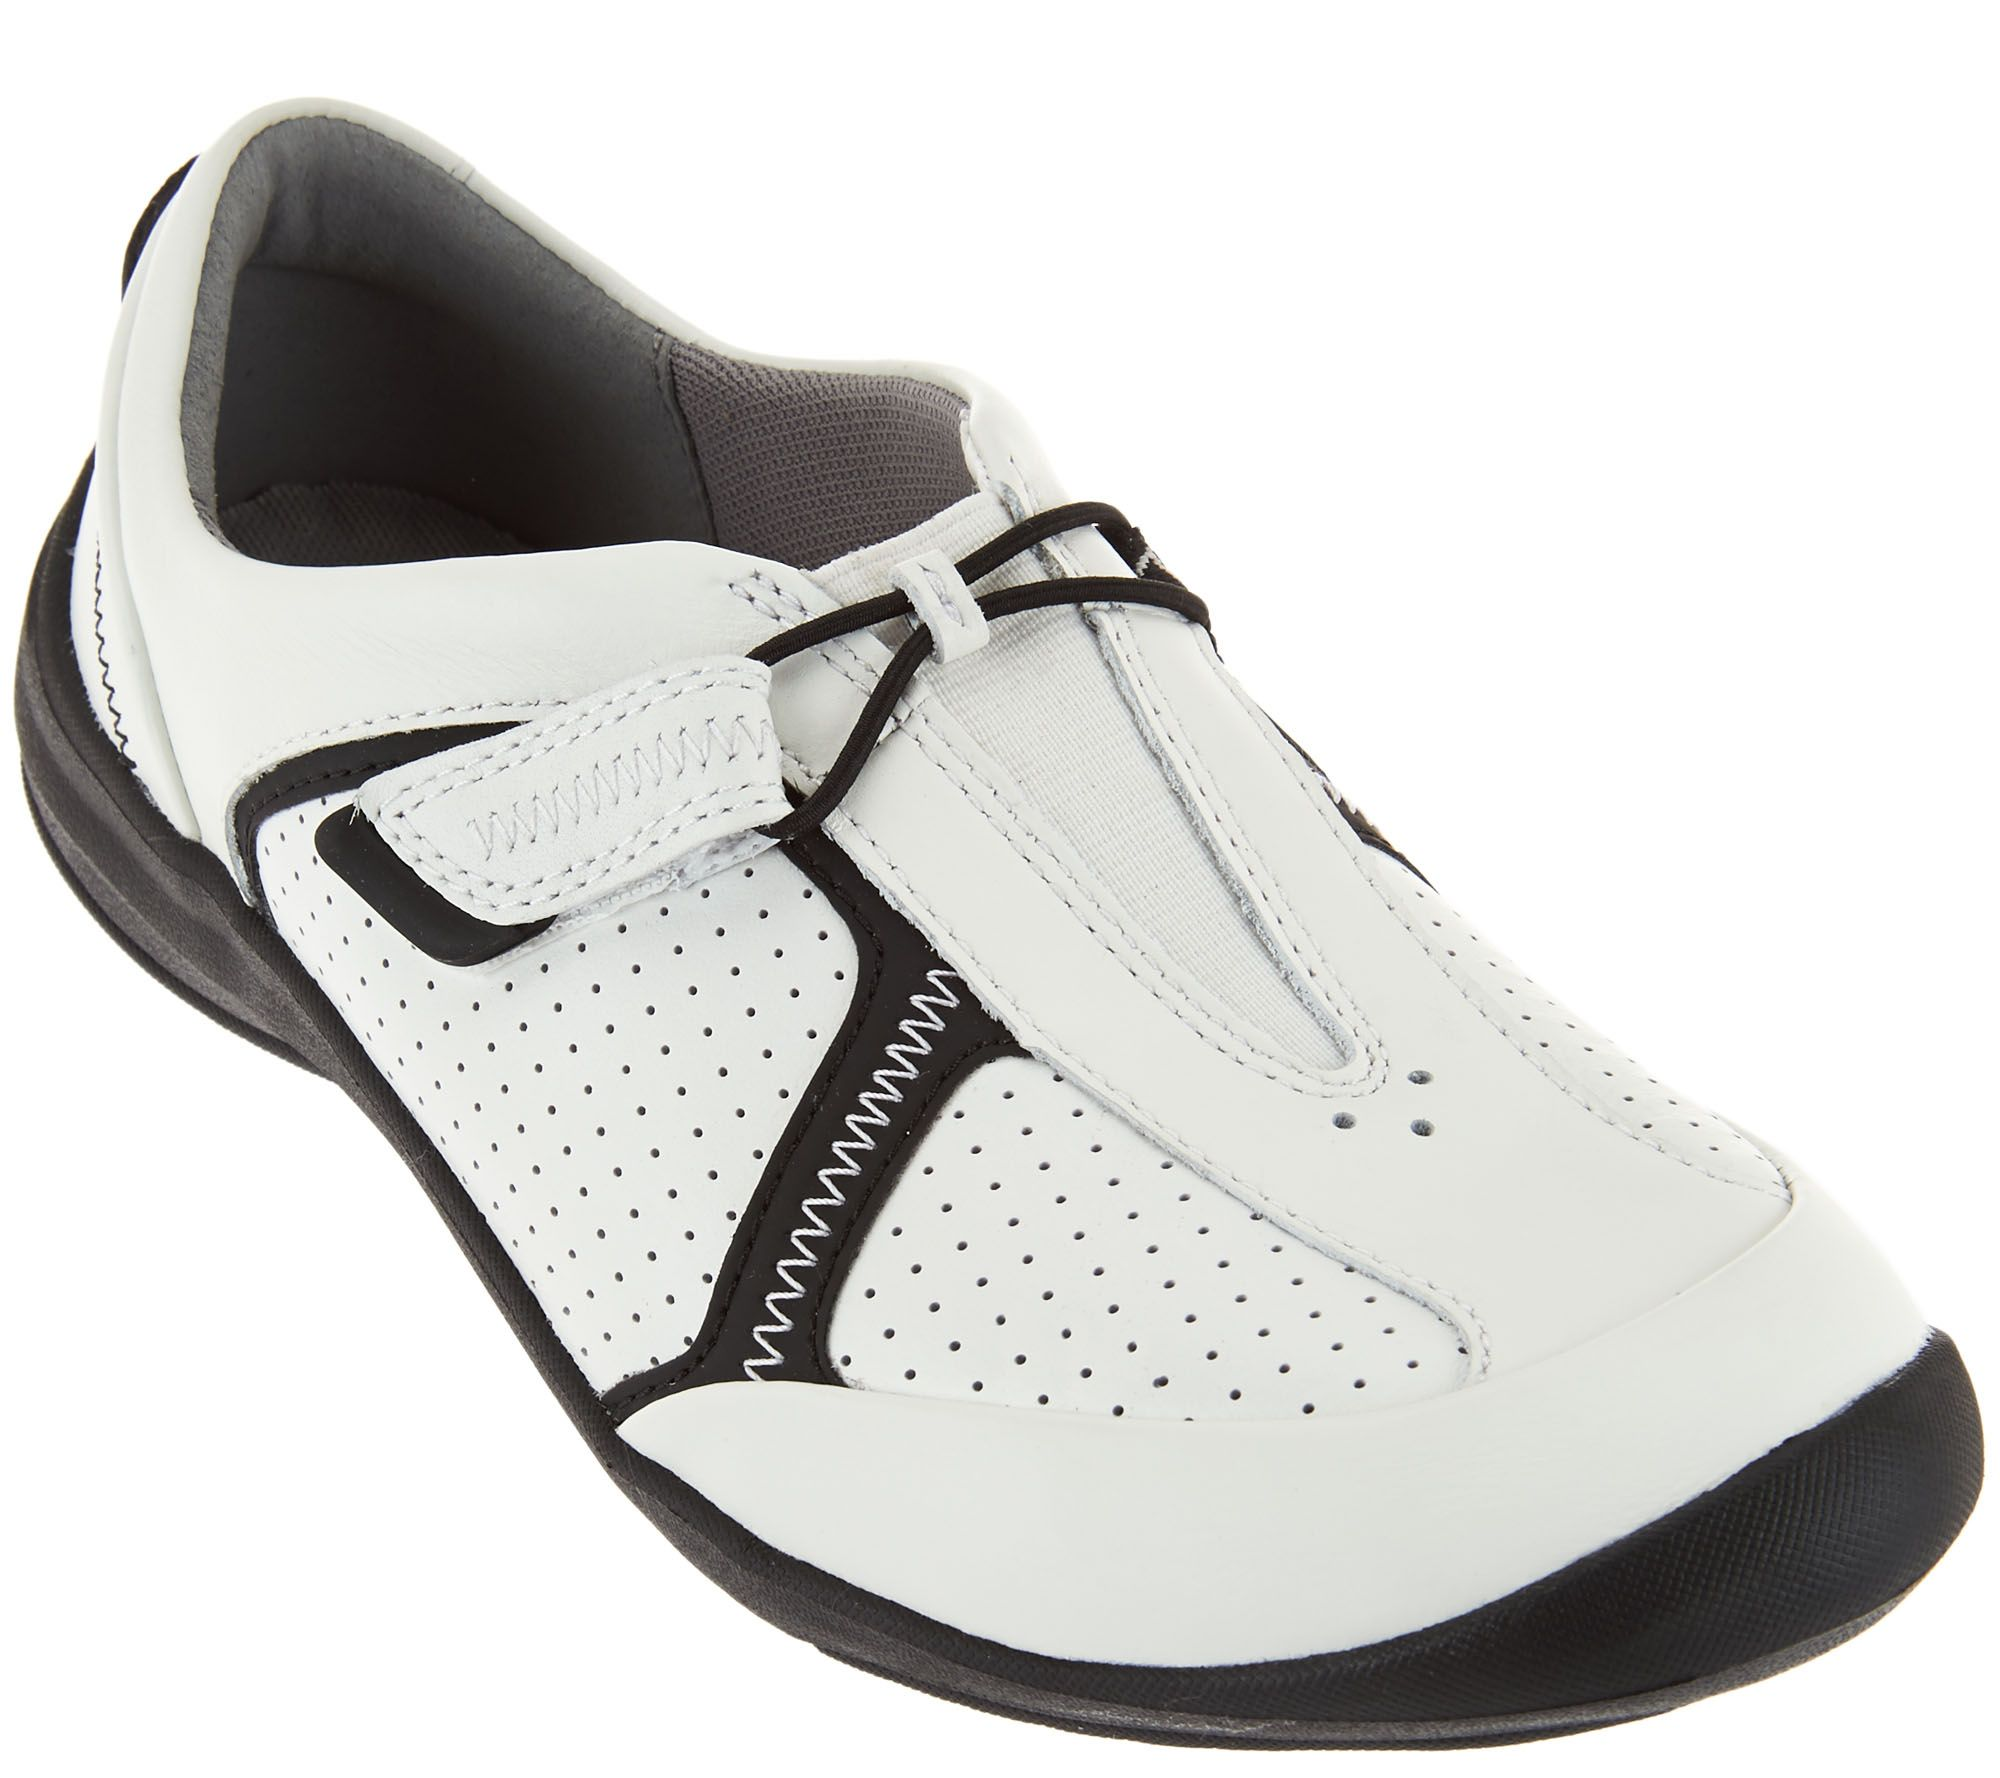 quot as is quot clarks privo outdoor athletic shoes asney slip